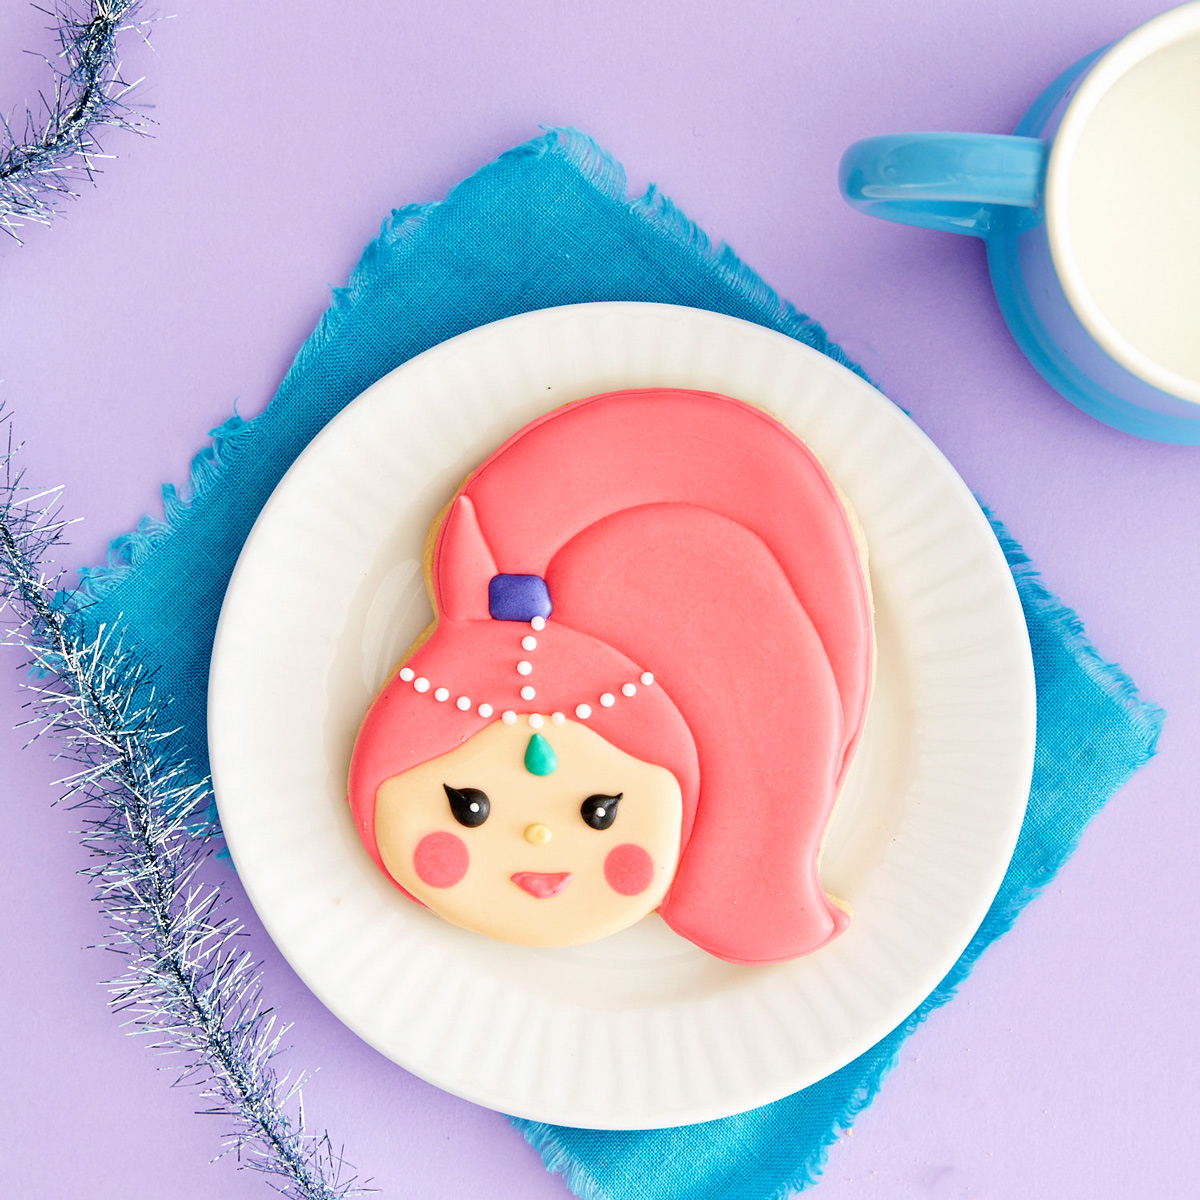 Nick Jr Inspired Cookie Decor Nickelodeon Parents